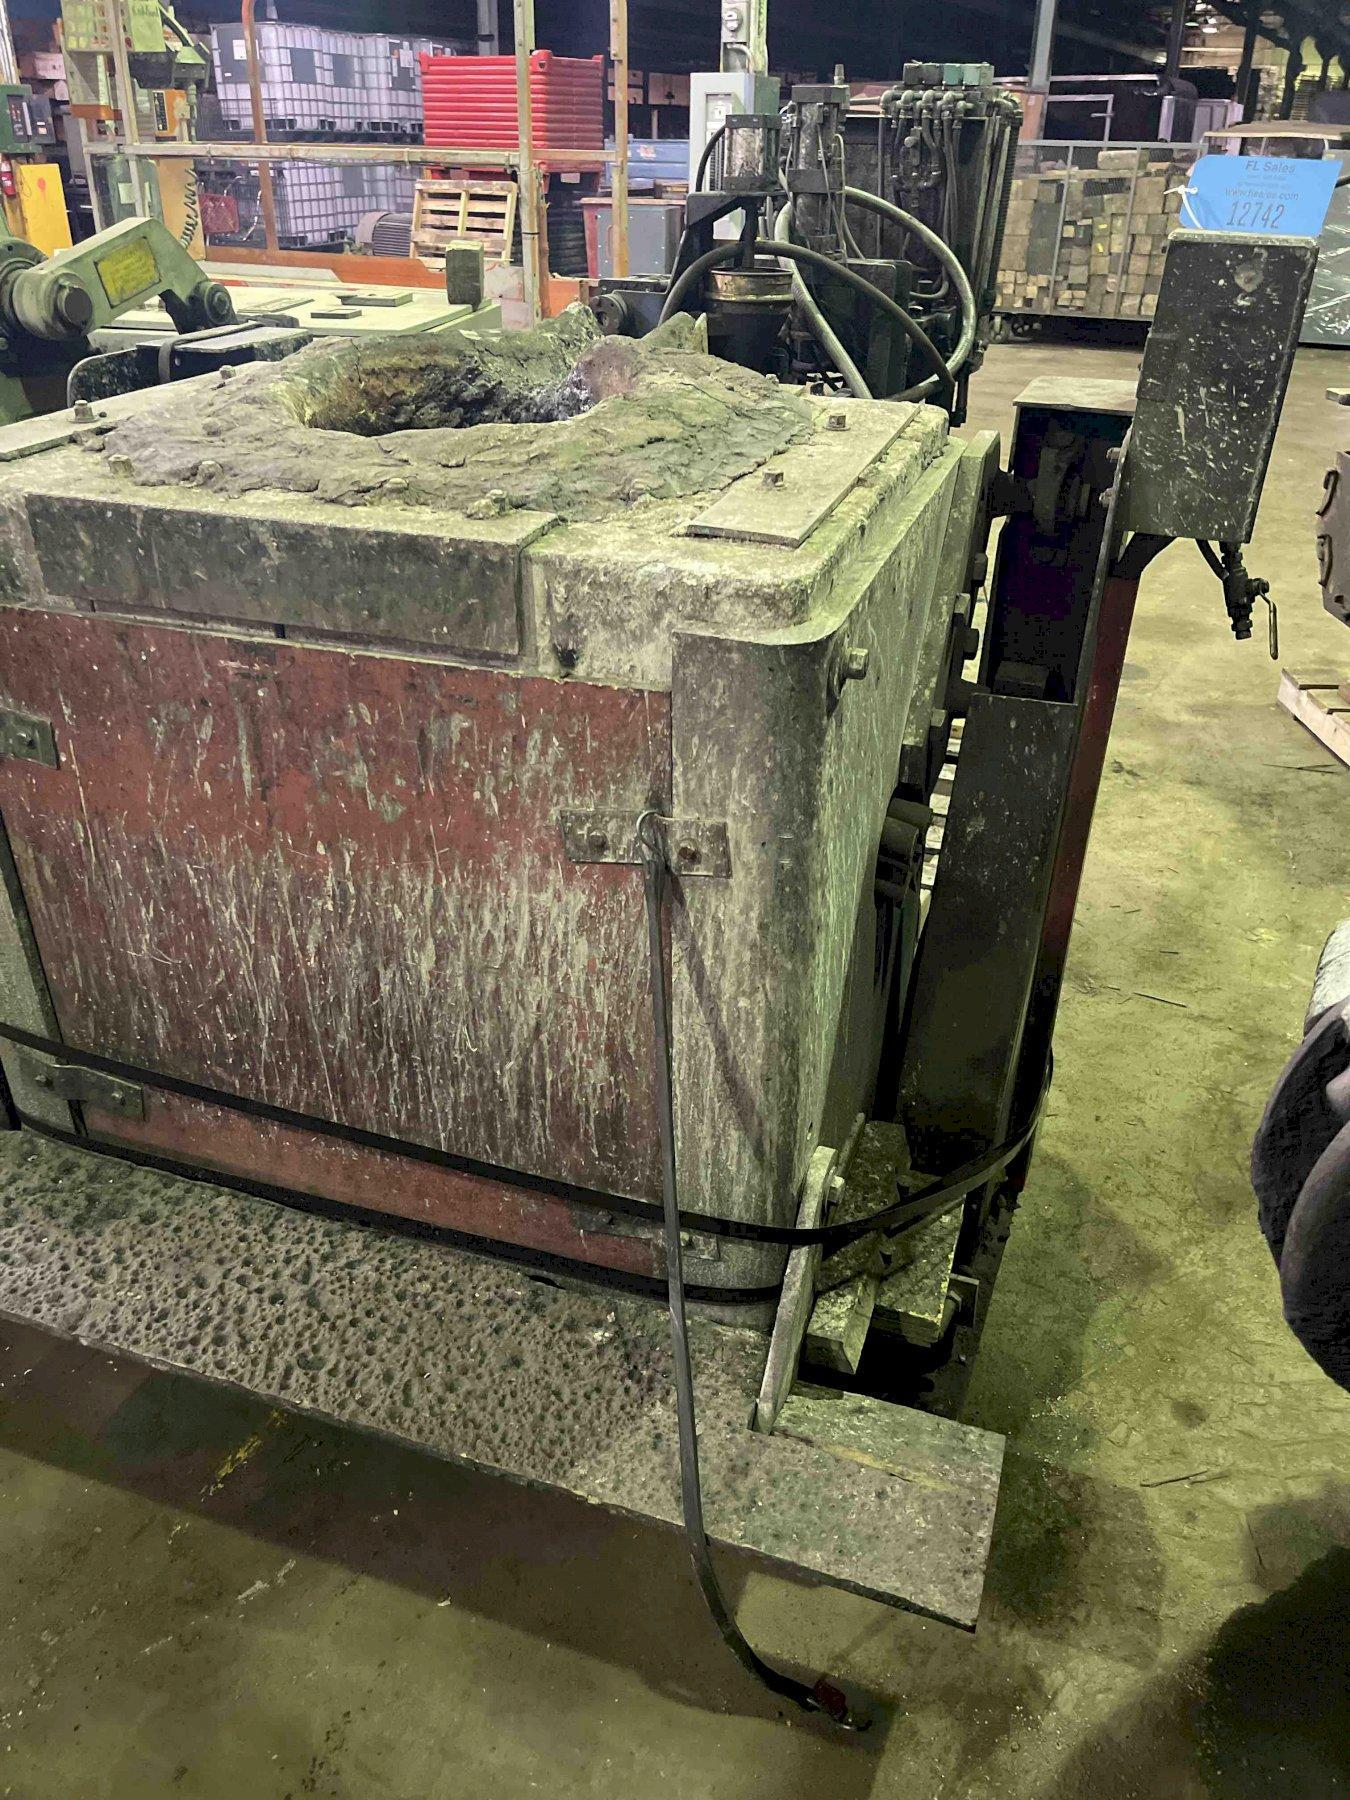 HYDRAULIC TILT TRANSITE BOX FURNACE WITH STAND NO HYDRAULIC PUMP, 15 TURNS